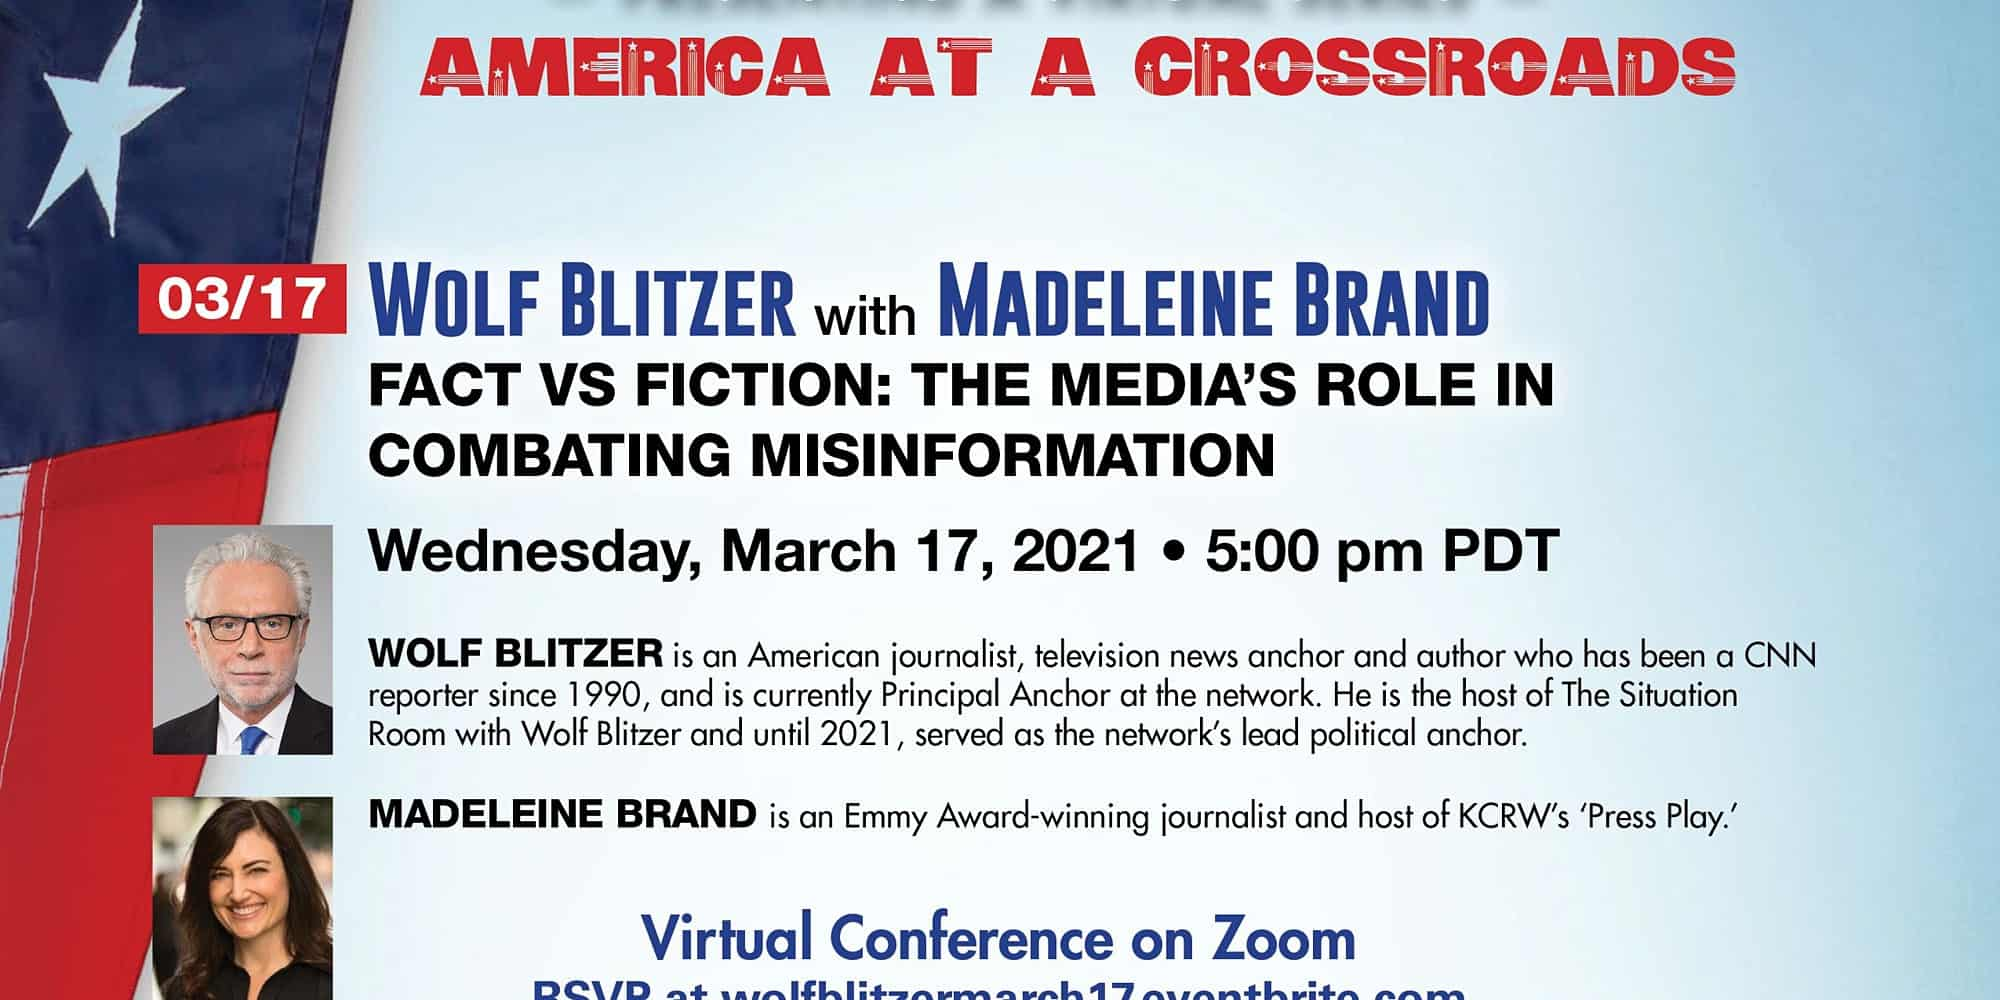 Wolf Blitzer:Fact vs Fiction: The Media's Role in Combating Misinformation